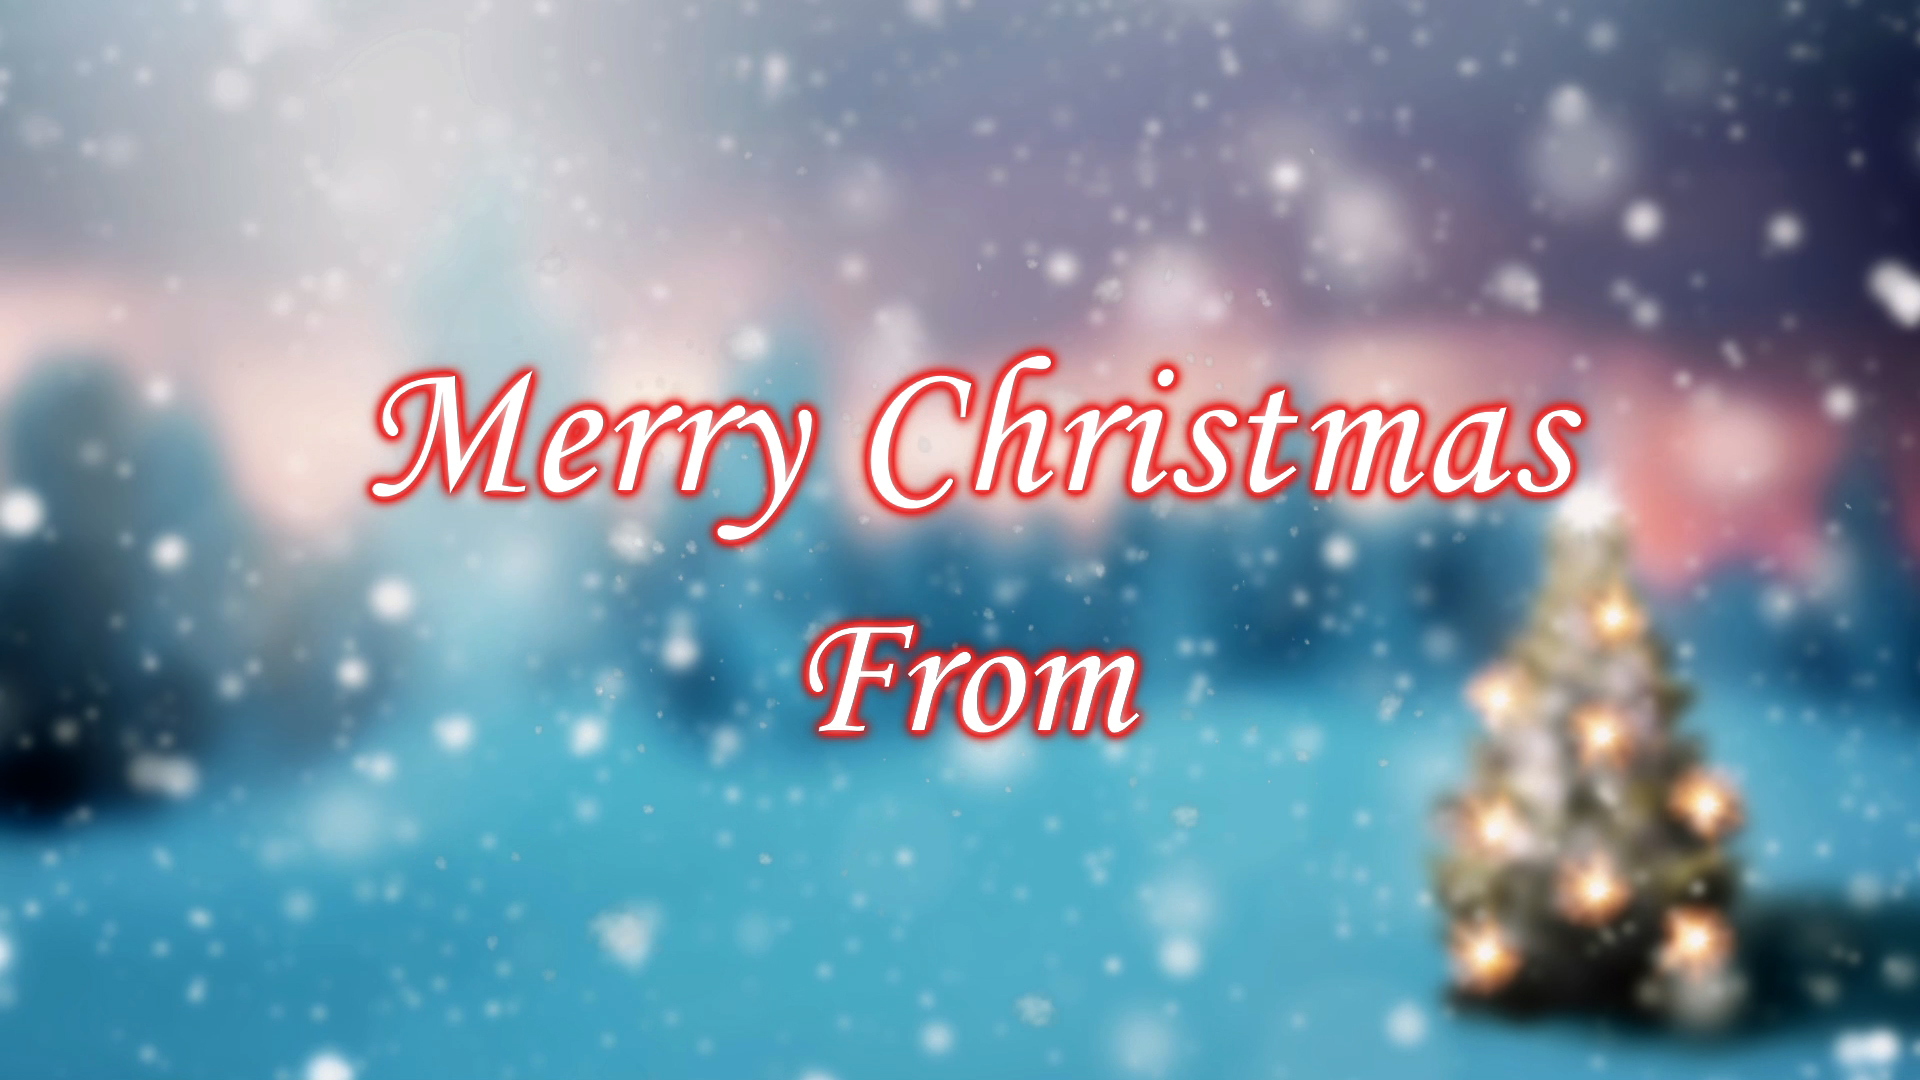 Dv greetings personalized video ecards video greeting cards merry christmas version 2 m4hsunfo